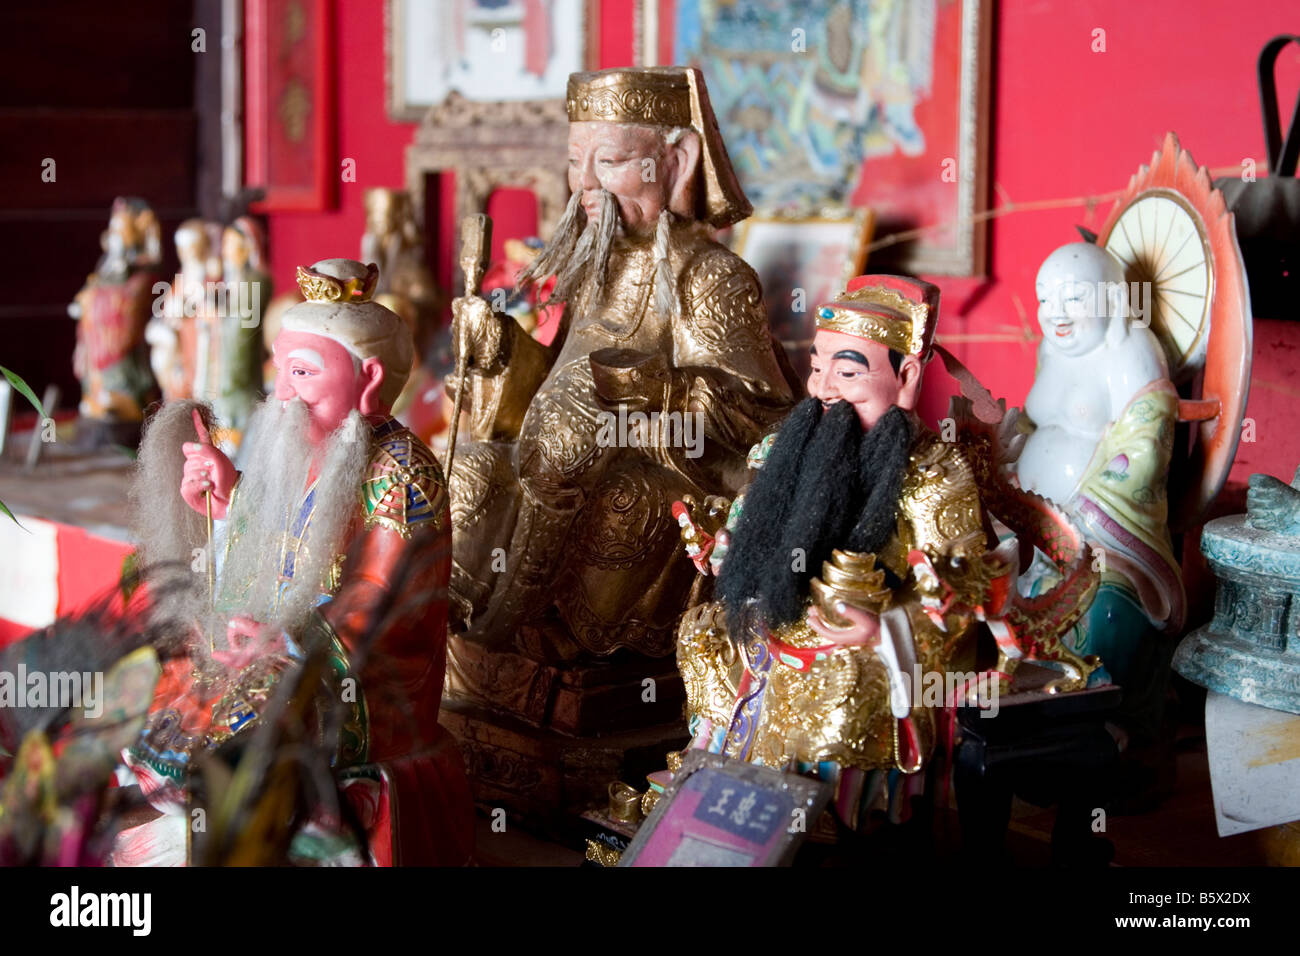 Deities at a Chinese temple in Thailand. - Stock Image